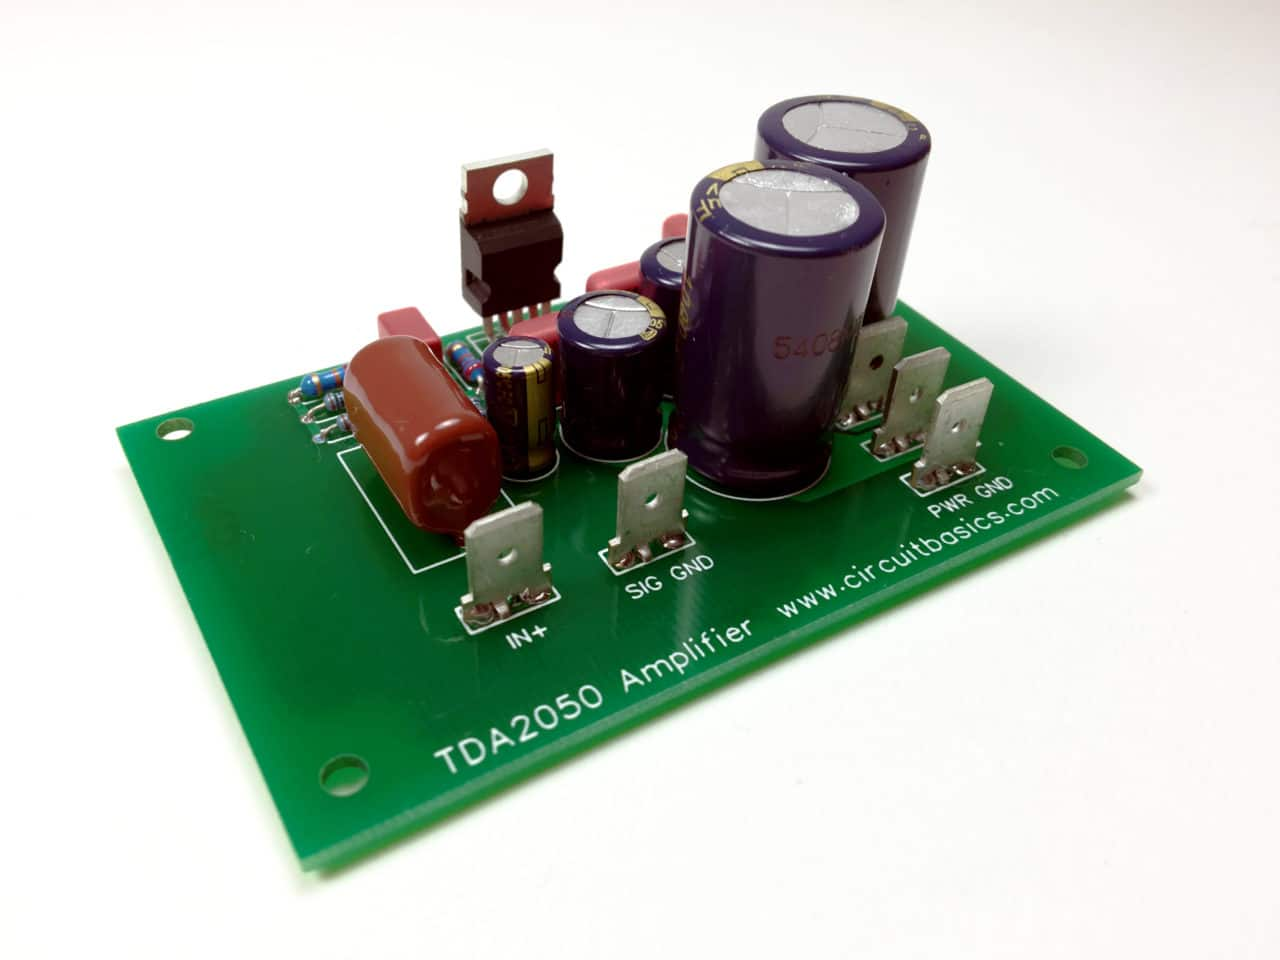 555 Timer Basics Astable Mode Frequency Counter Circuit Working And Applications How To Design Build An Amplifier With The Tda2050